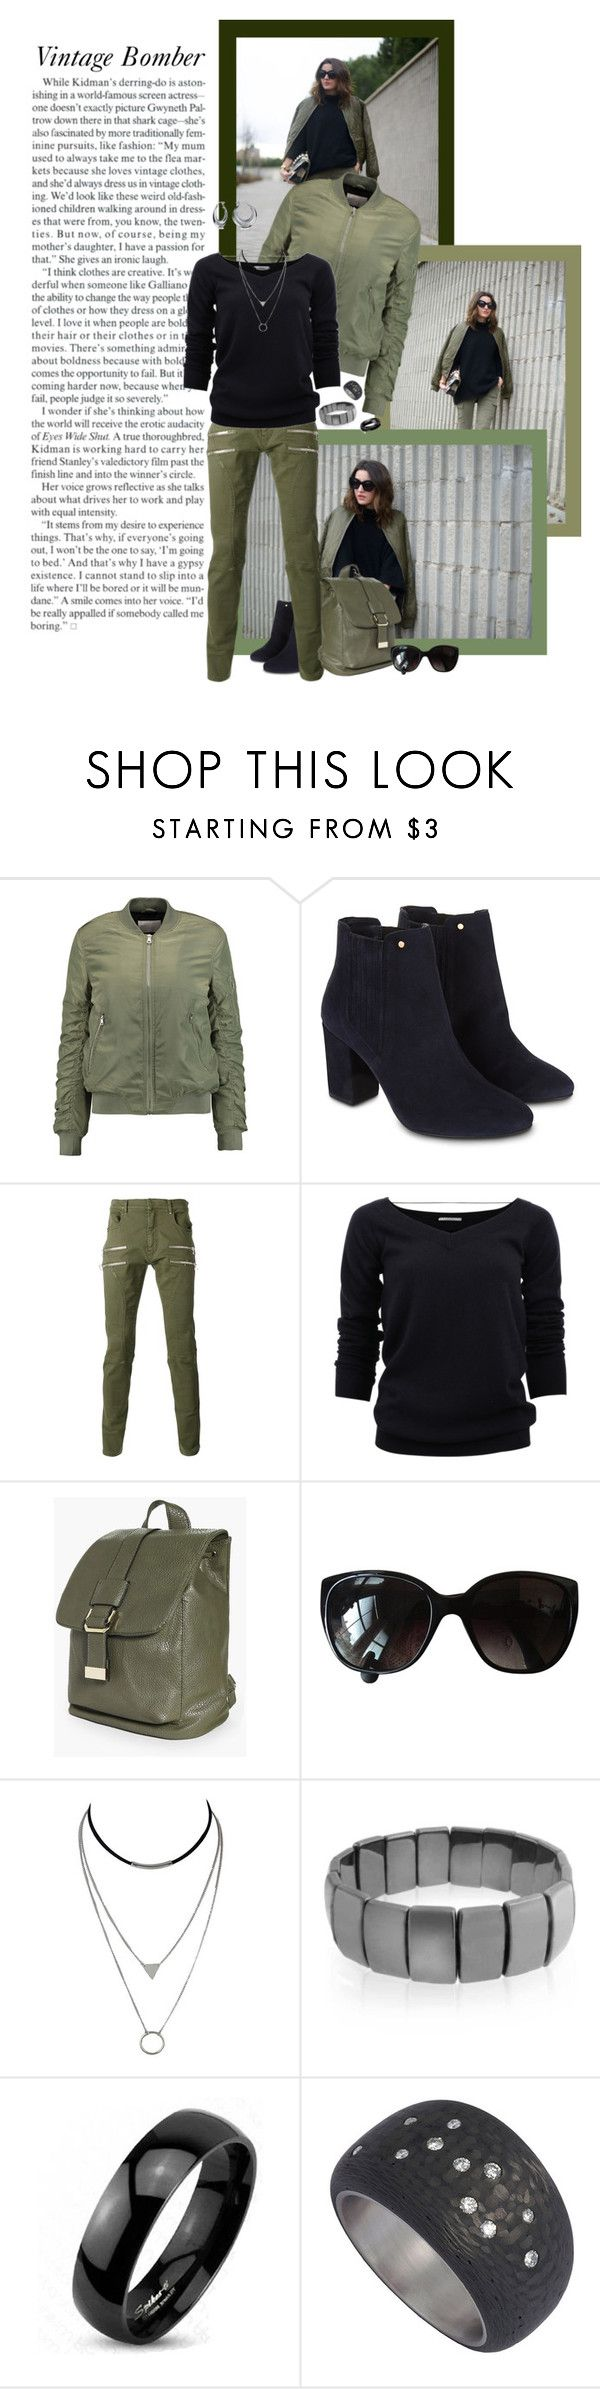 """""""Vintage Bomber"""" by shyloc ❤ liked on Polyvore featuring W118 by Walter Baker, Monsoon, Faith Connexion, Brunello Cucinelli, Boohoo, Chanel, Bling Jewelry, West Coast Jewelry and vintage"""